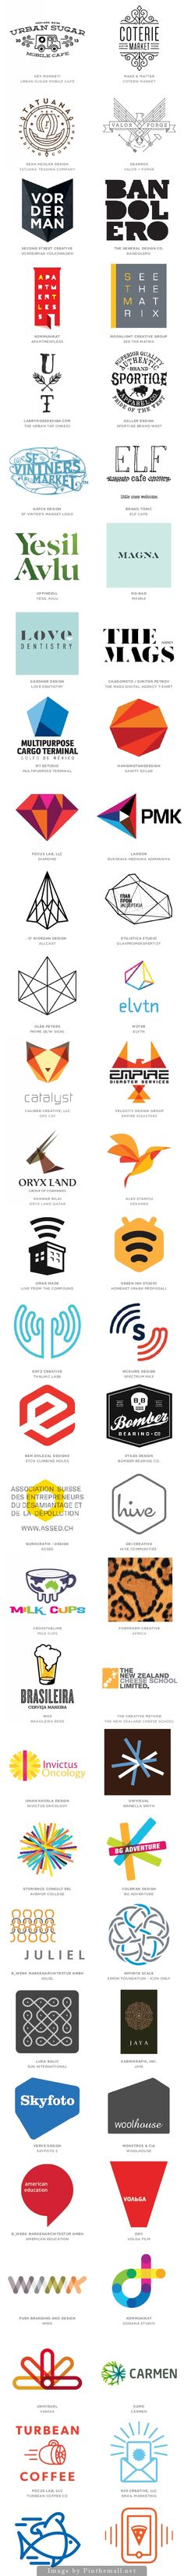 Logo Design Trends for 2014 (Mono Crest, Letter Stacks, Hand Type, Dazzle, Flat Facets, Geo Wires, Trans Menagerie, Waves, Hexagons, Geography, Pompons, Knit, States, Links,and Motion Lines)